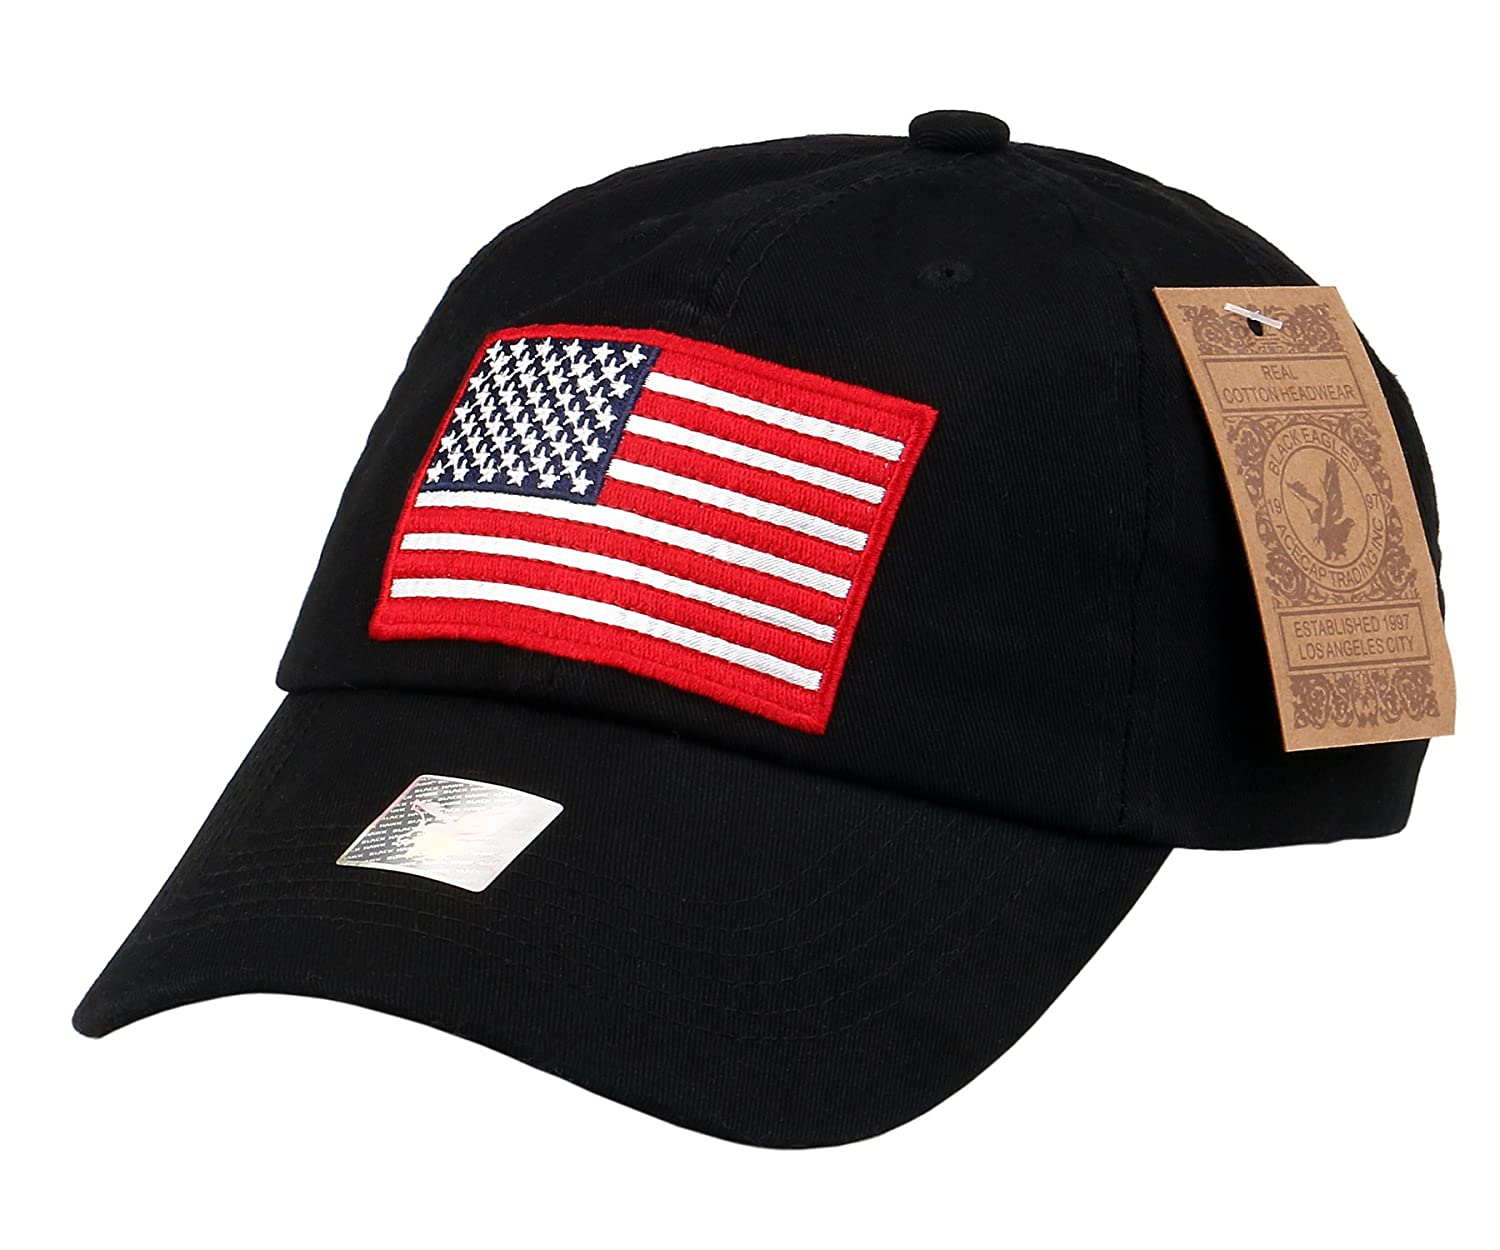 RufNTop Black Eagles American Flag Cap 100% Cotton Classic Dad Hat Plain Baseball  Cap(Wash Black One Size) at Amazon Men s Clothing store  bc4680ccebb